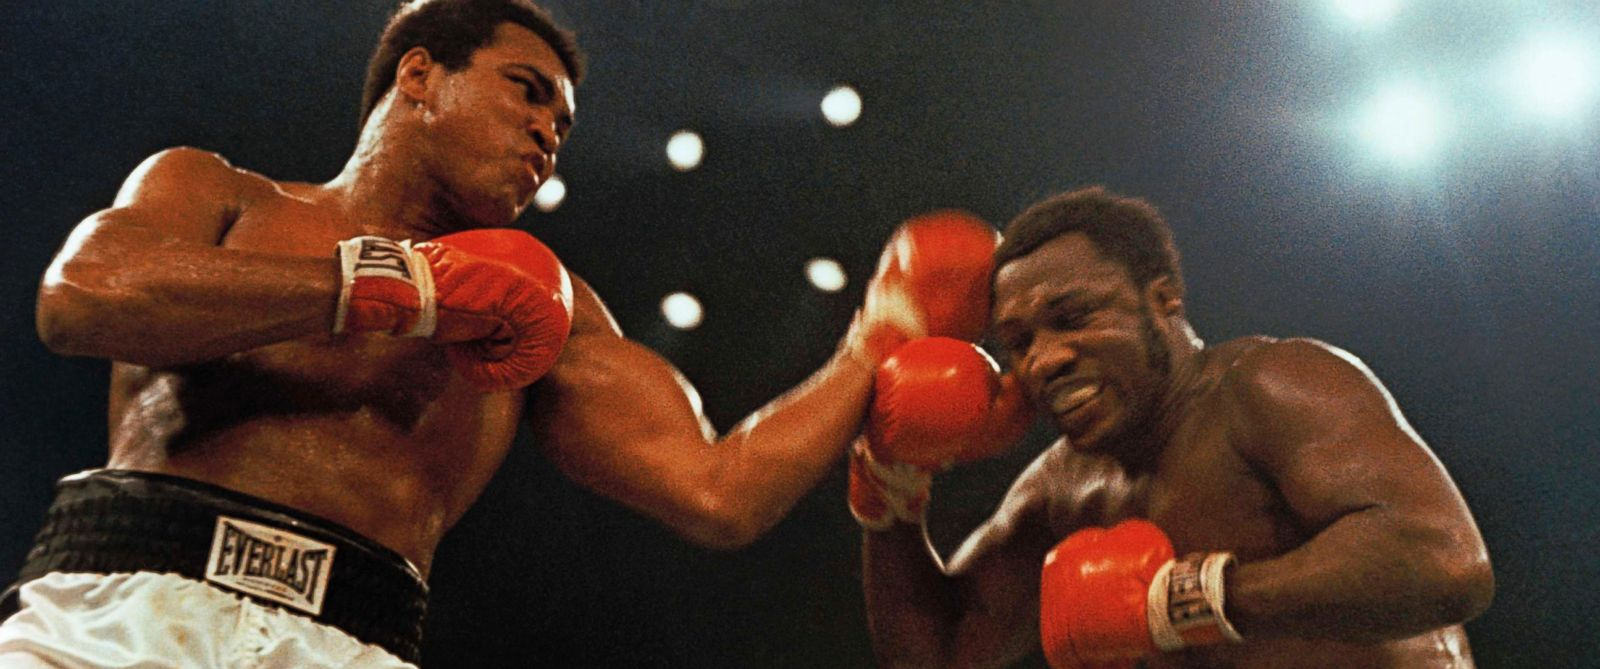 career of muhammad ali as a professional heavyweight boxer Muhammad ali's boxing career: in the eighth round to reclaim the heavyweight title in 1975, muhammad ali faced joe frazier muhammad ali's boxing career.